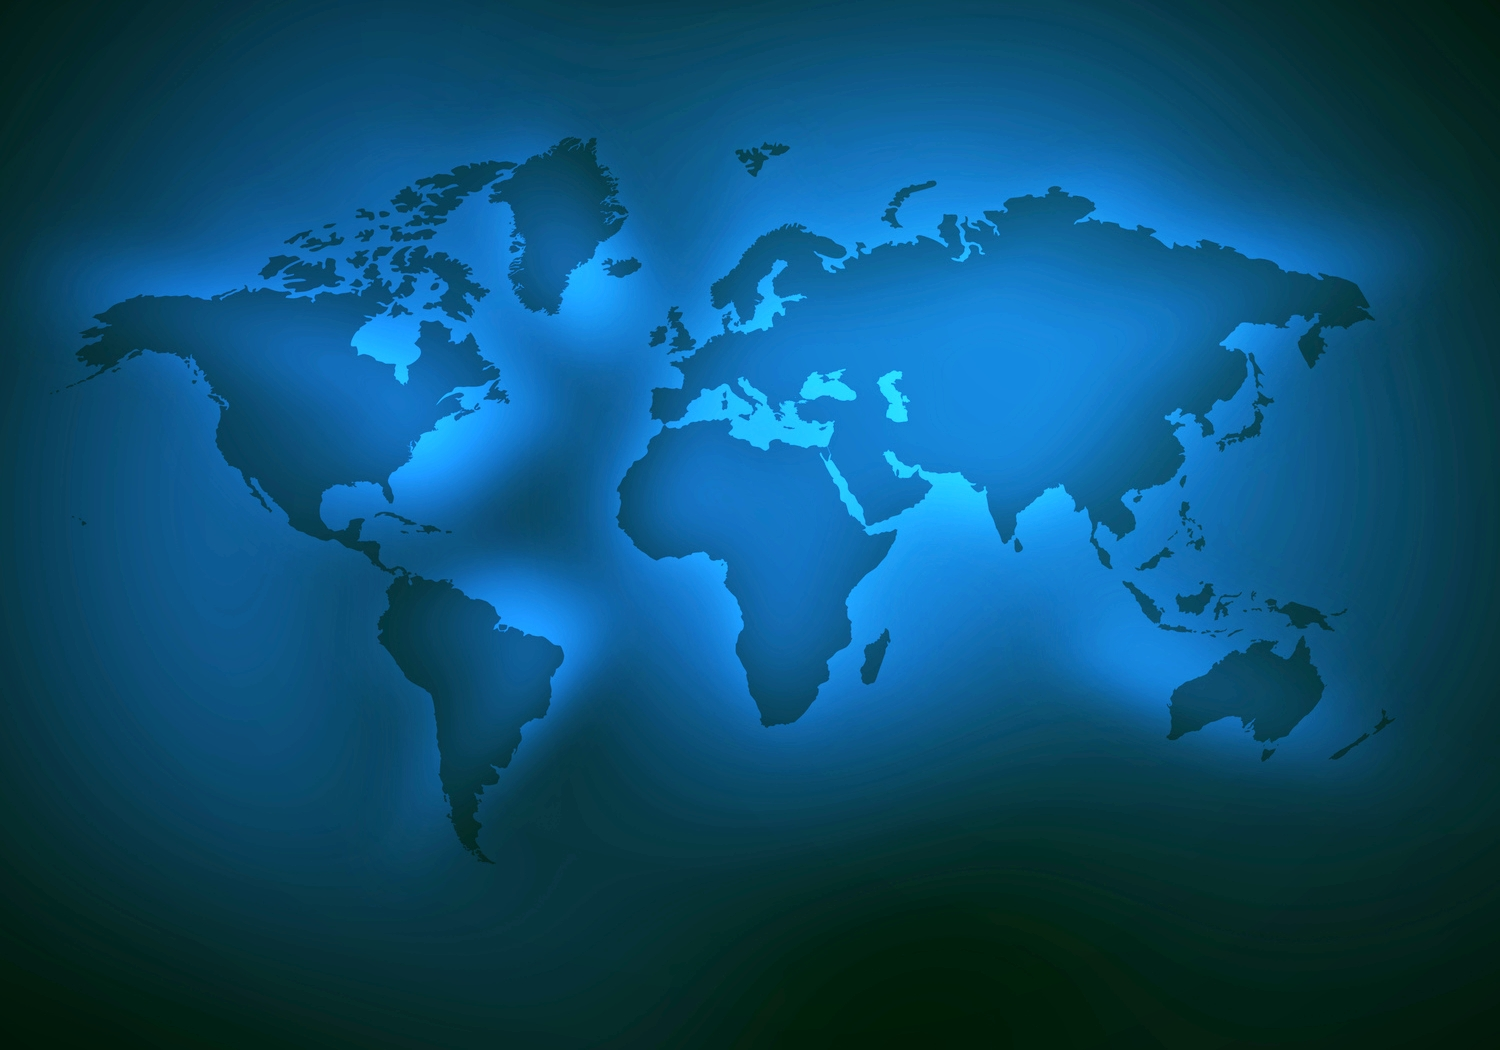 Over 100 Scientific centers discover the power of global partnerships